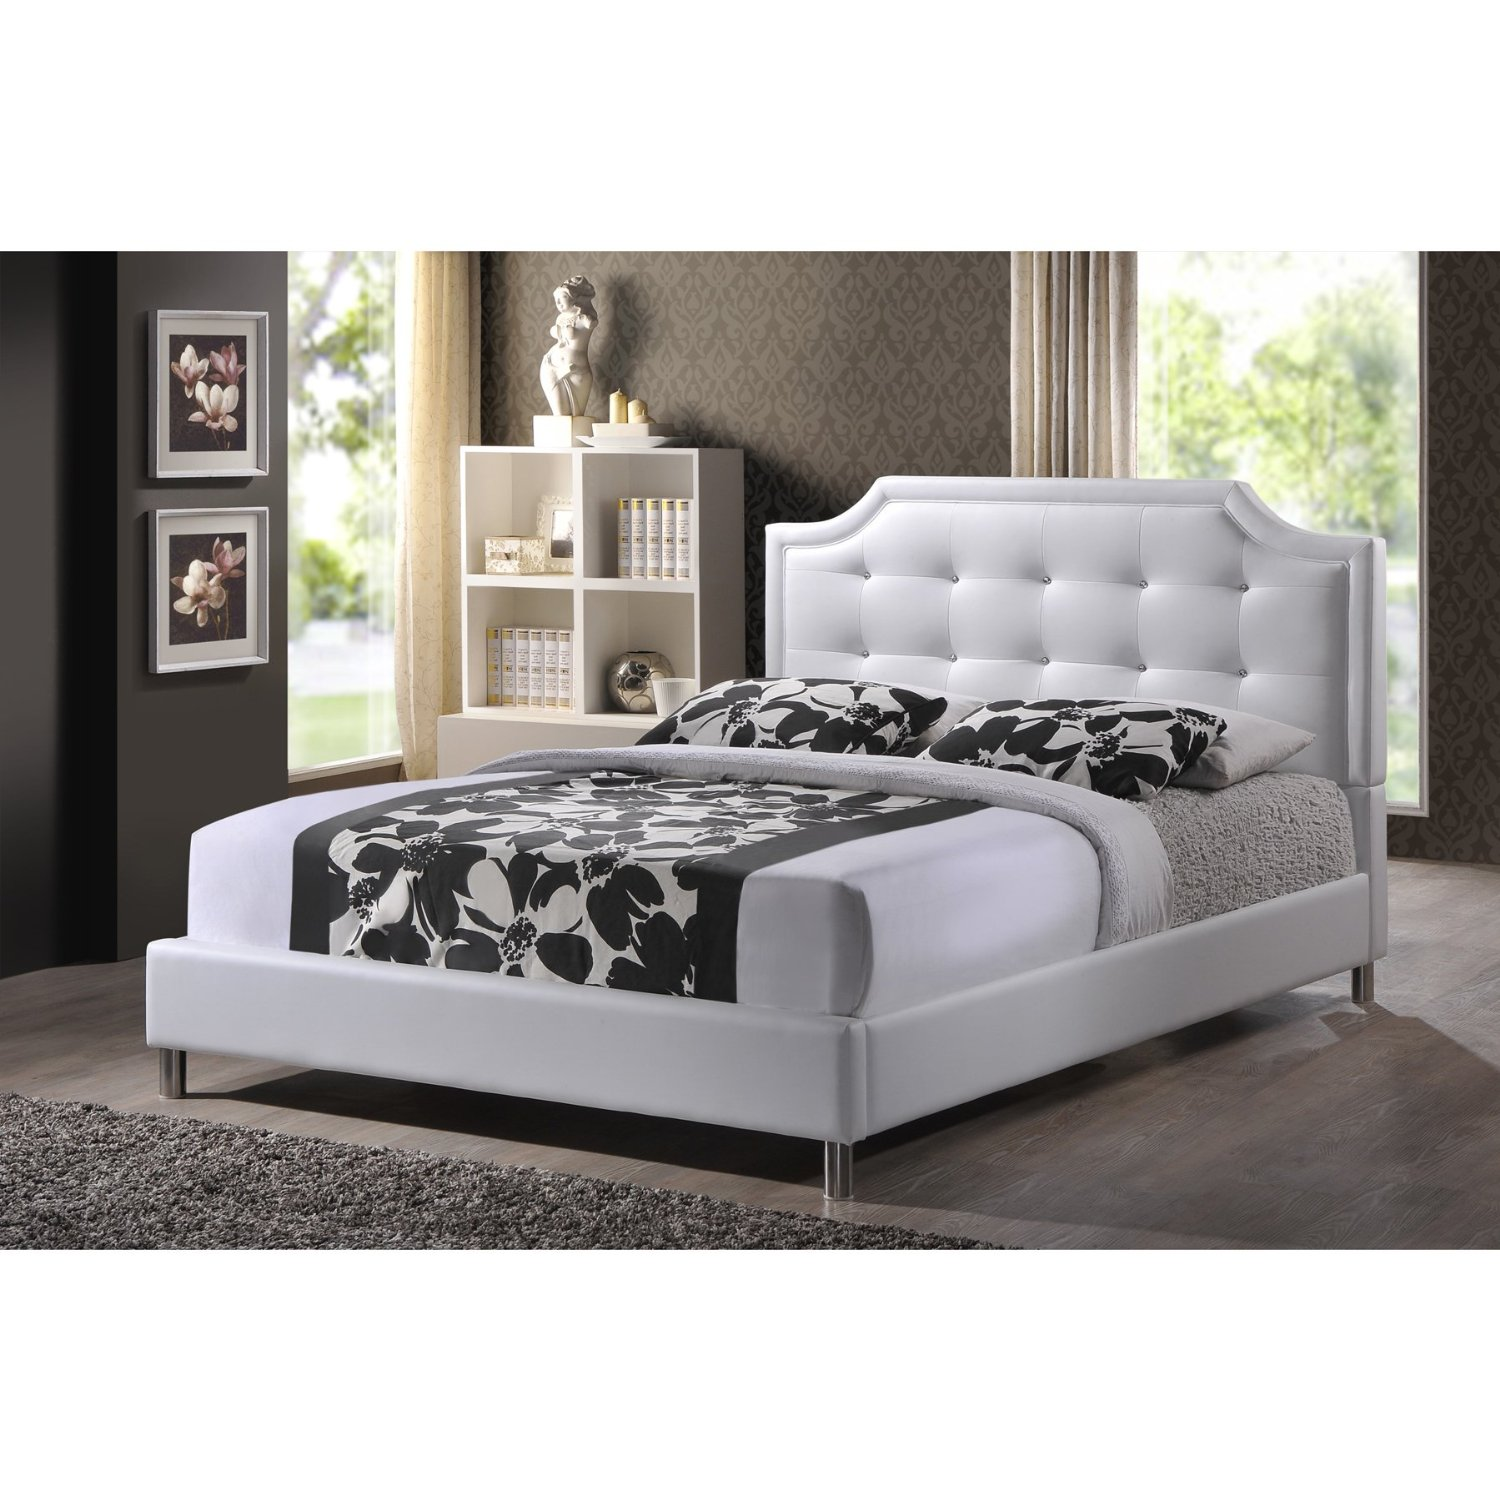 Get Quotations Carlotta Button Tufting With Faux Crystal Accent White